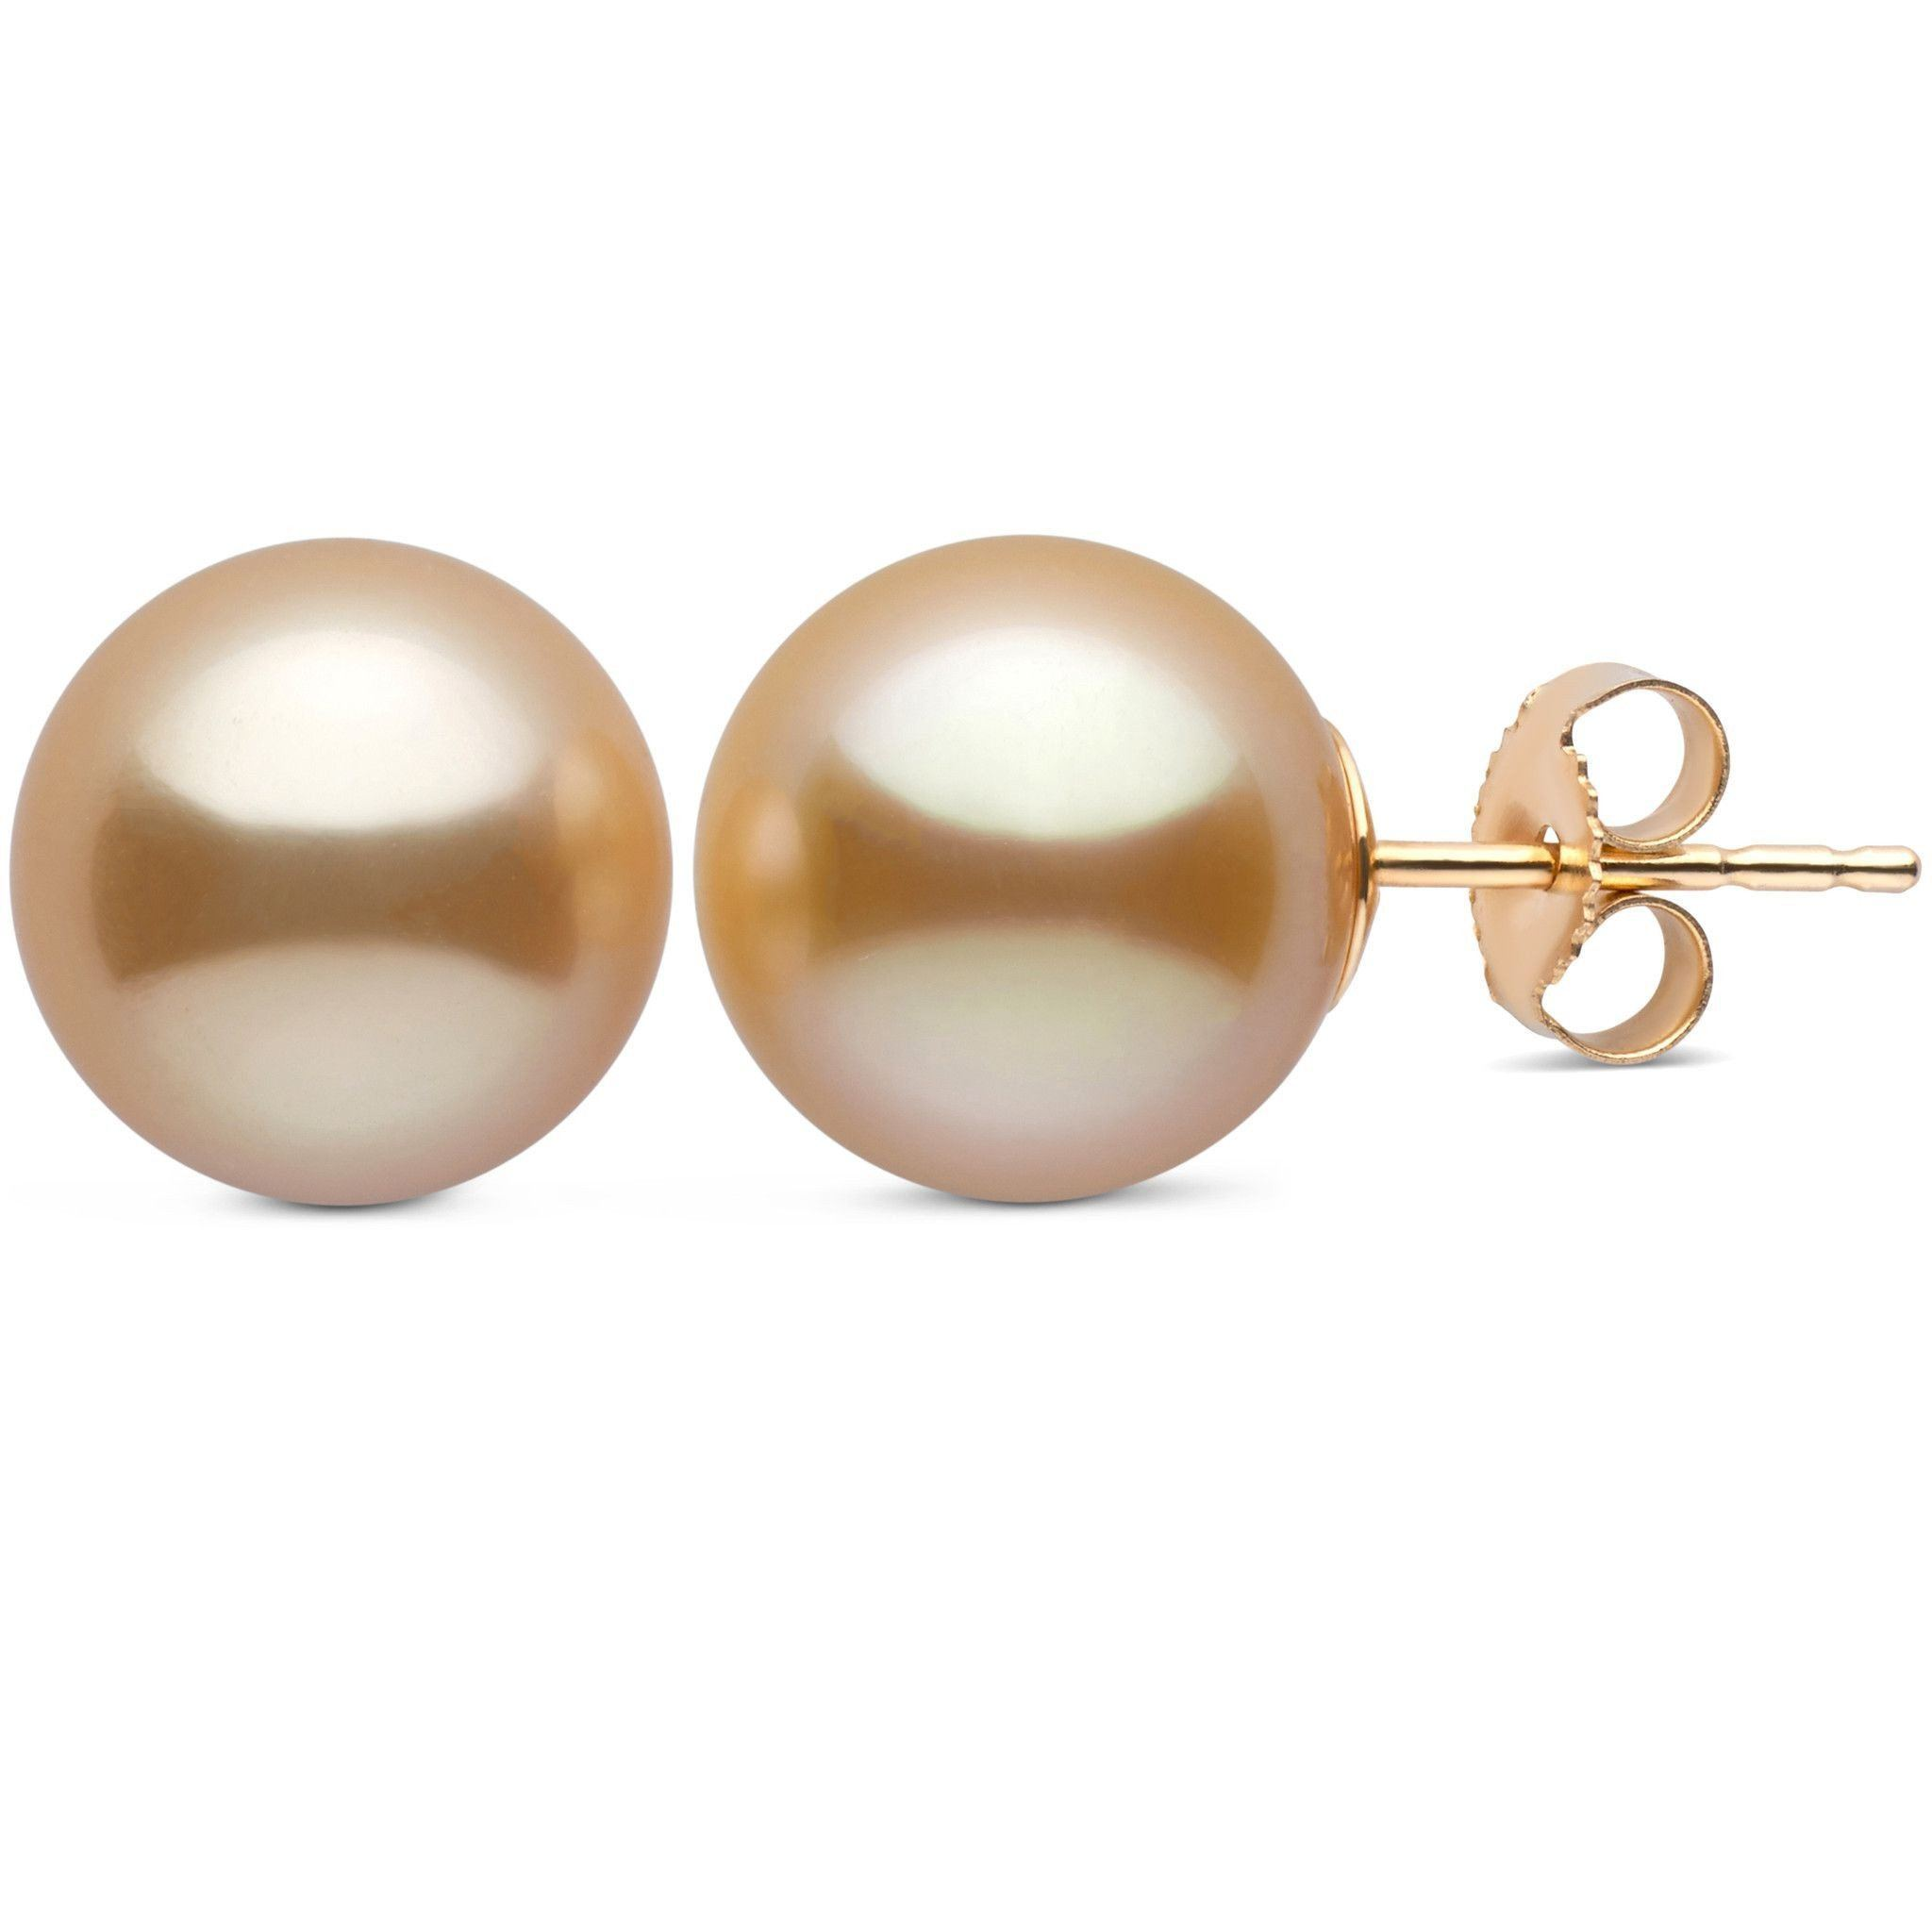 south diamonds pearls item click to cultured gold expand sea samantha earrings full and